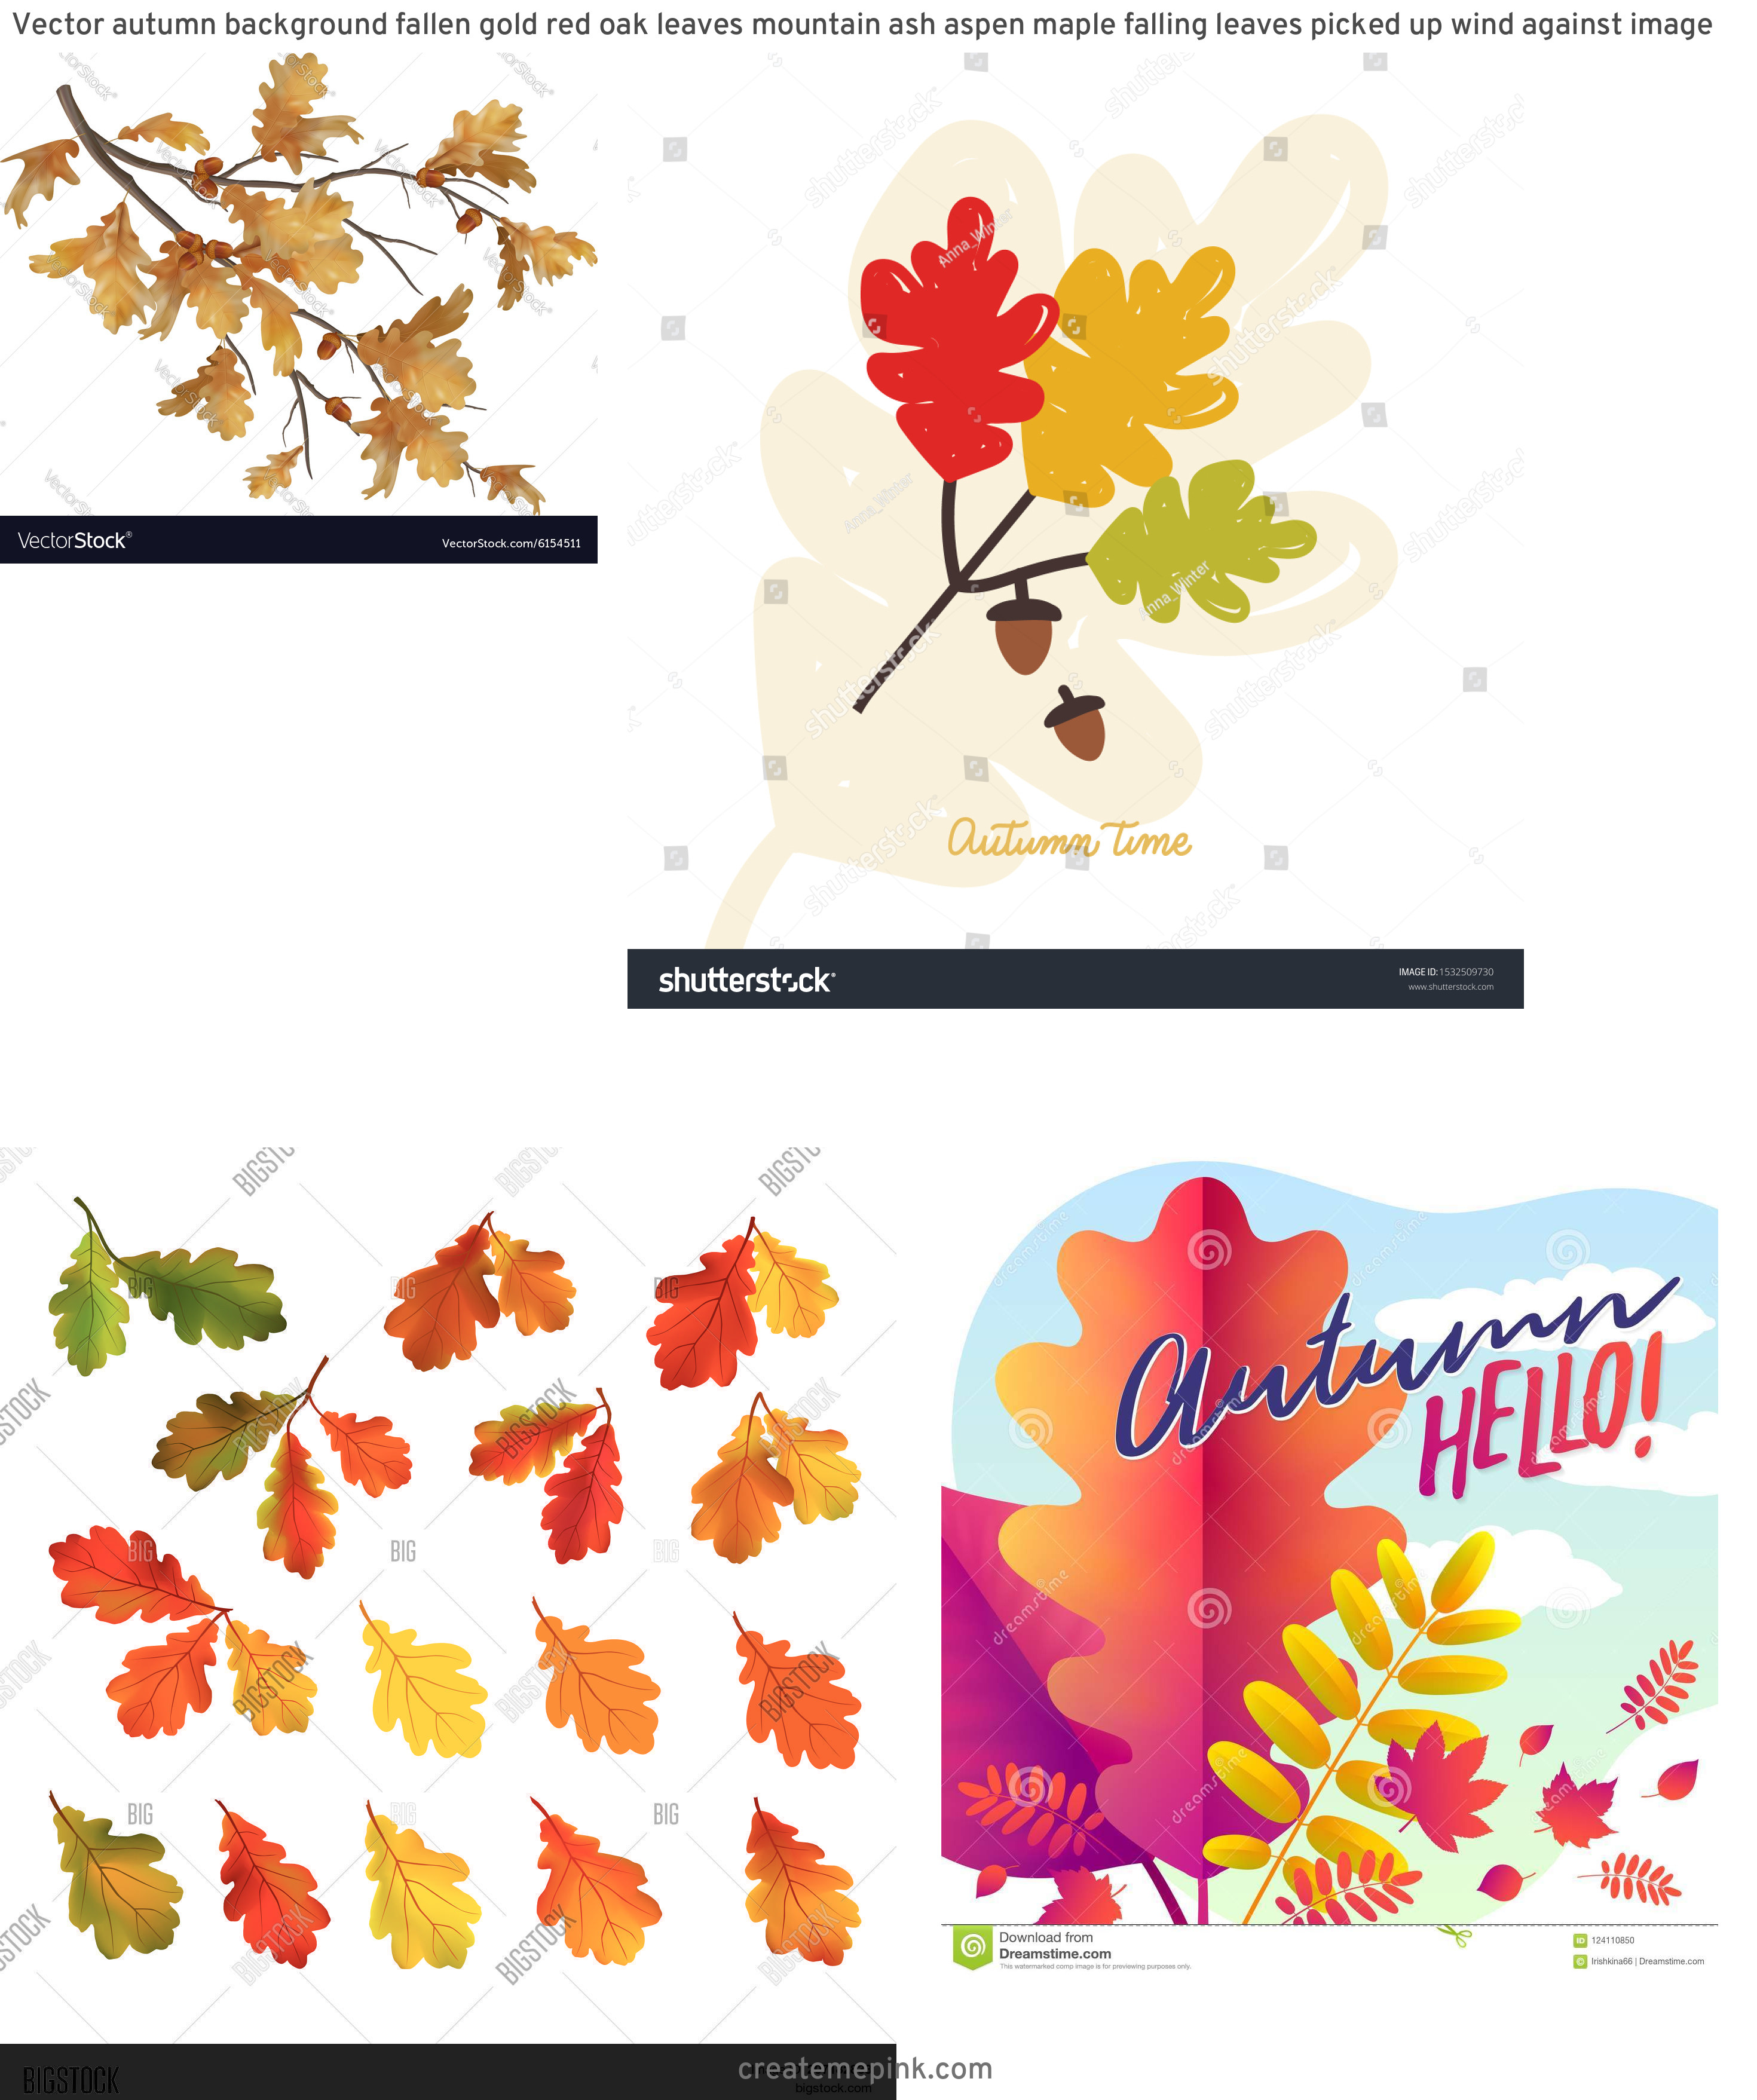 Falling Oak Leaves Vector: Vector Autumn Background Fallen Gold Red Oak Leaves Mountain Ash Aspen Maple Falling Leaves Picked Up Wind Against Image